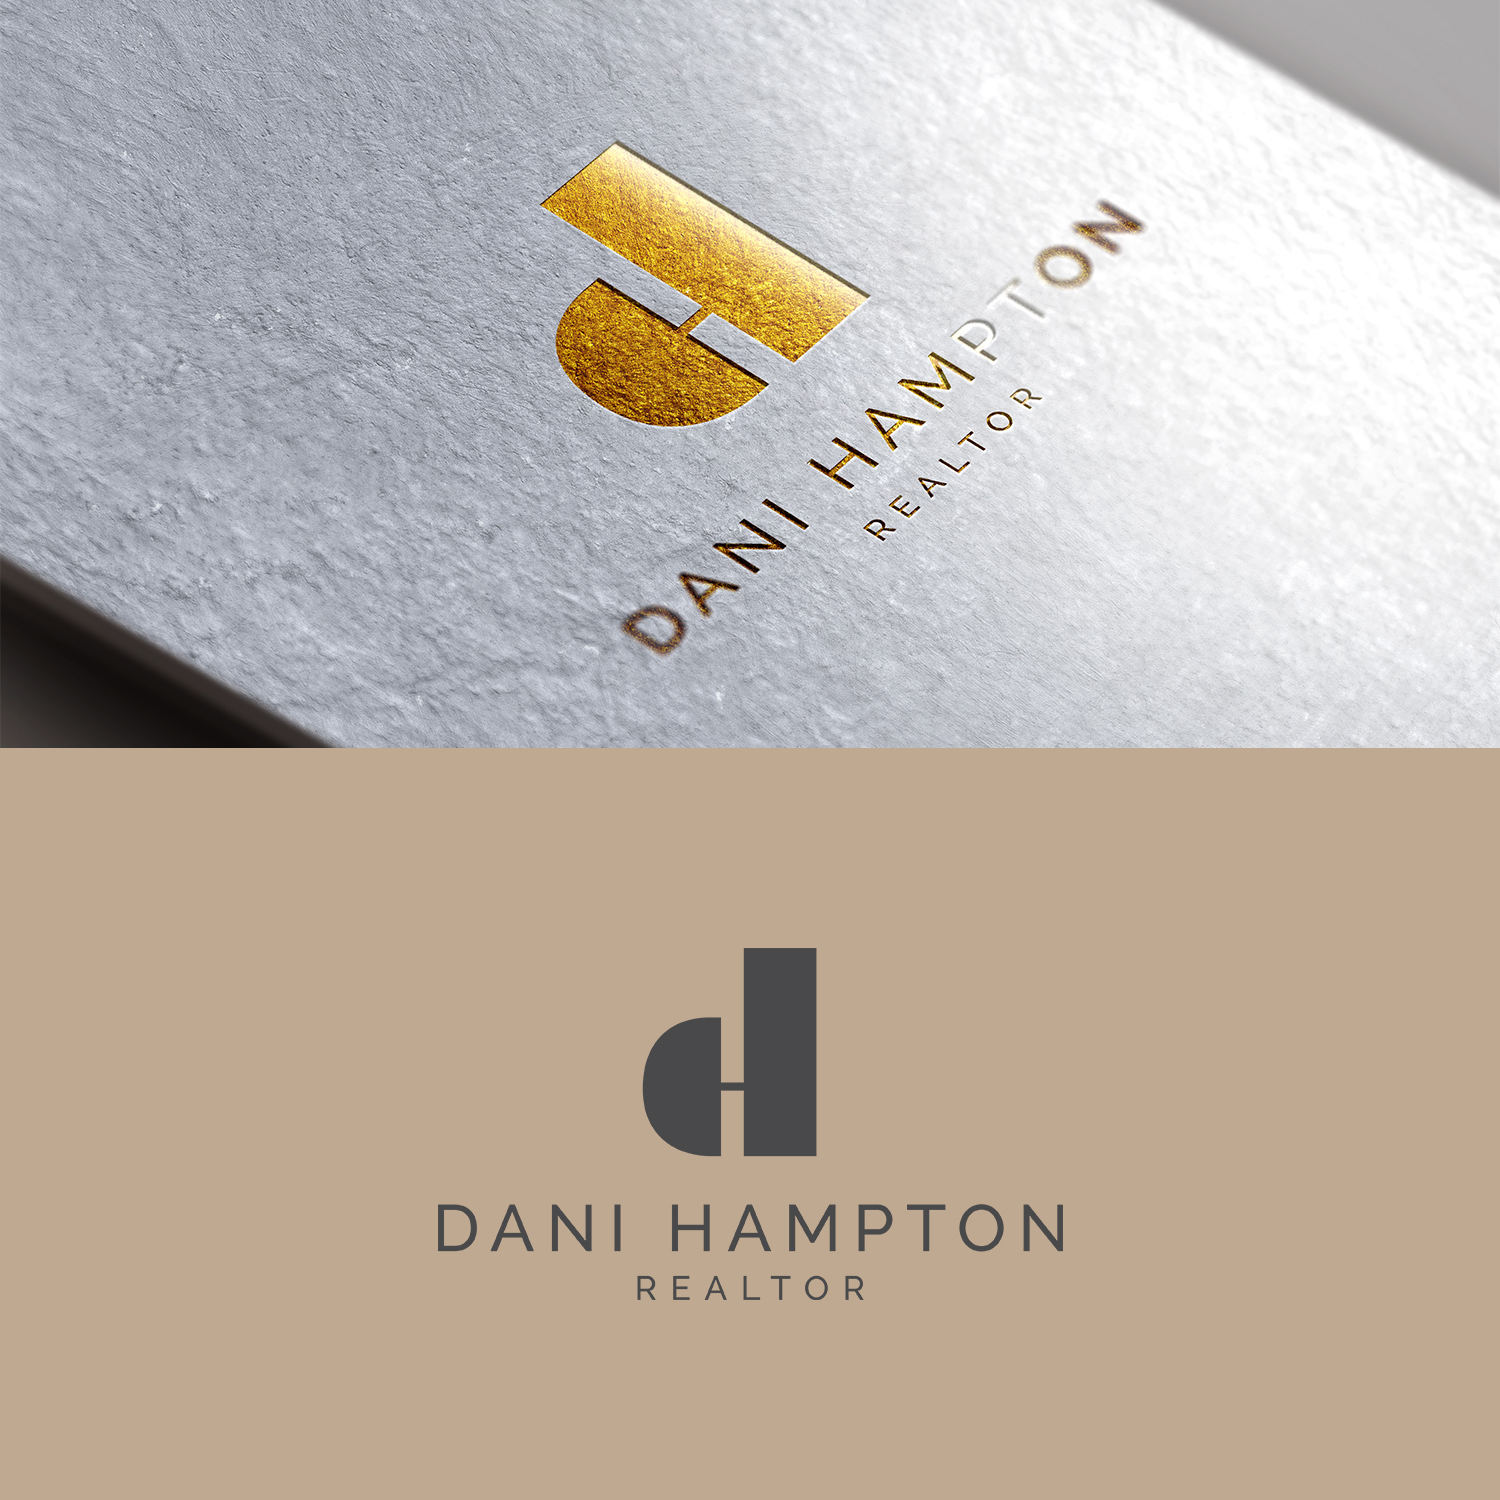 Modern, Feminine, Realtor Logo Design for Dani Hampton Realtor by ...